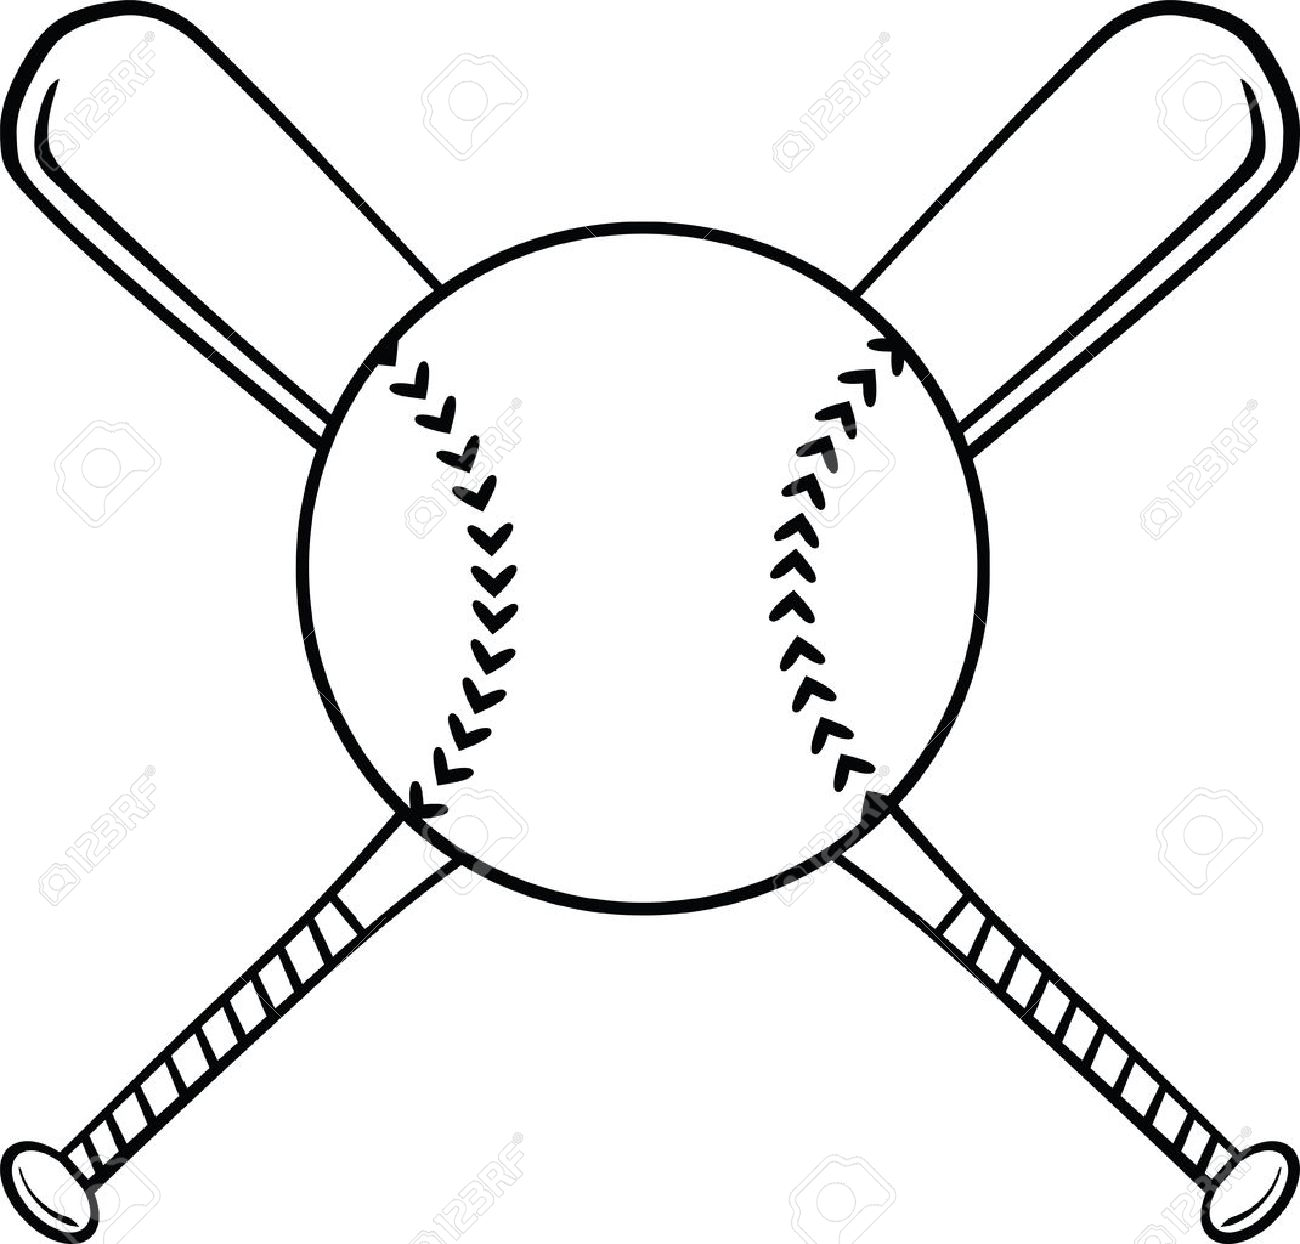 Black And White Crossed Baseball Bats And Ball Illustration